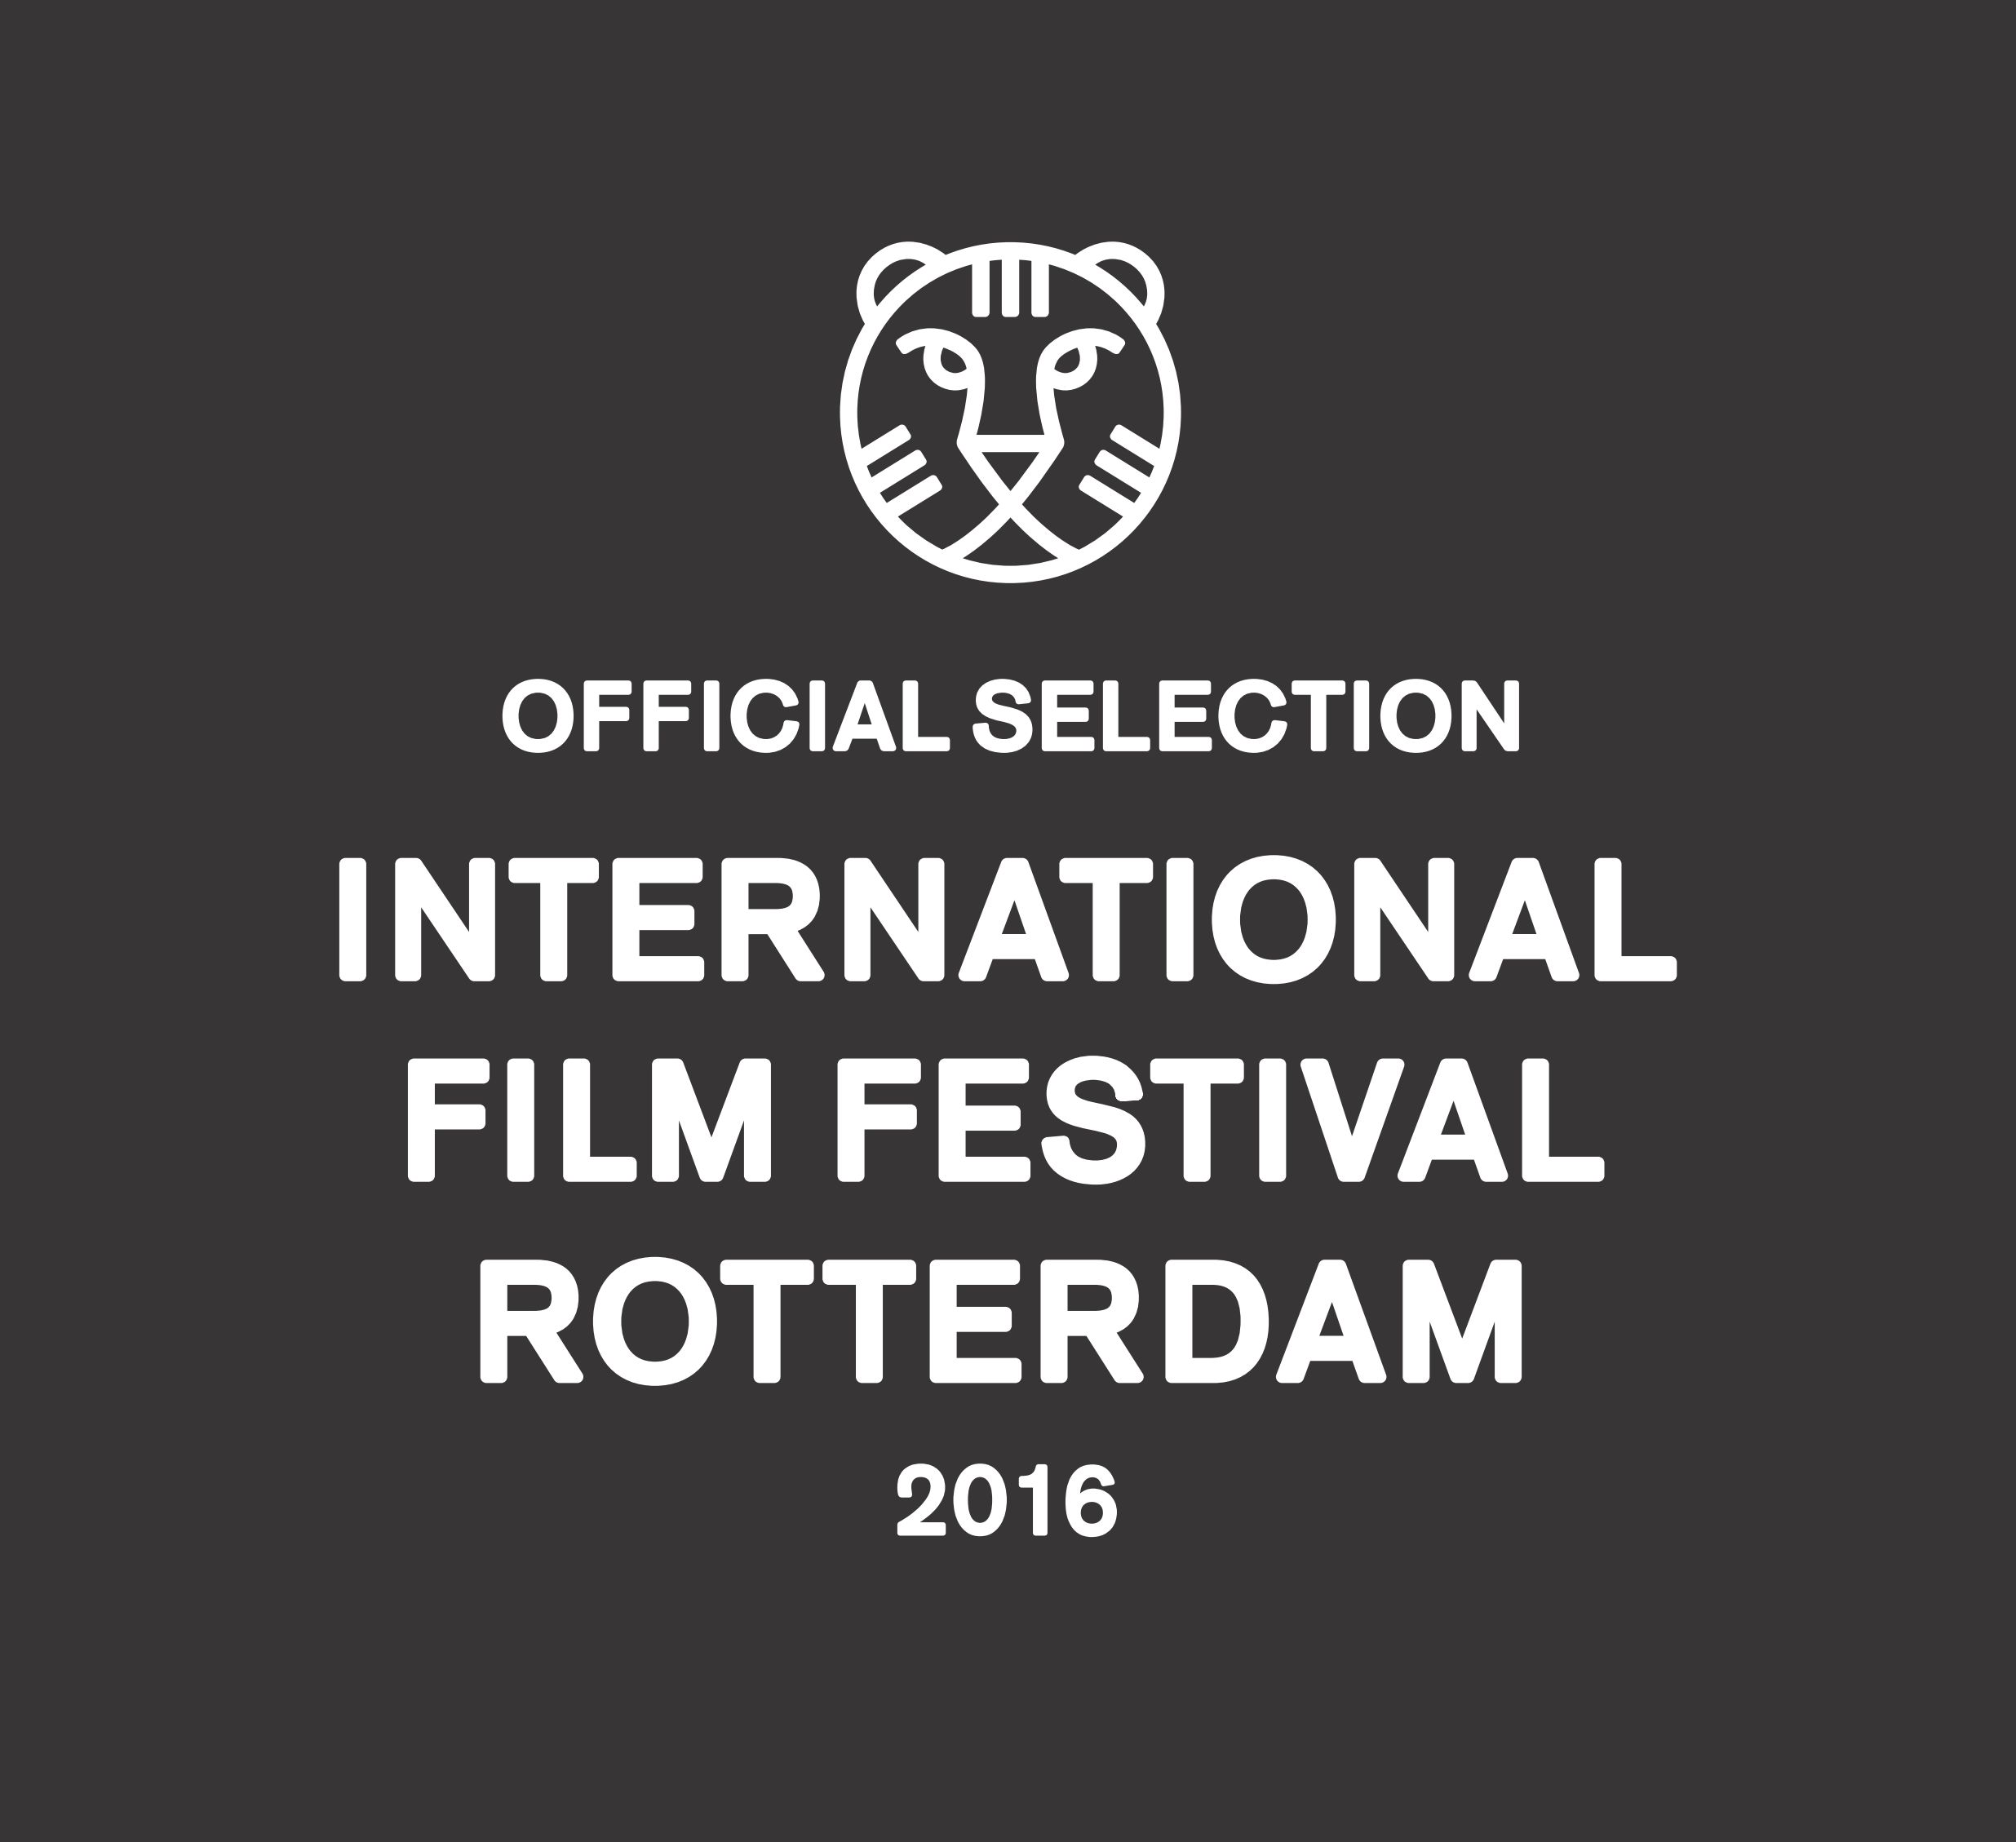 international_film_festival_rotterdam_logo_3129